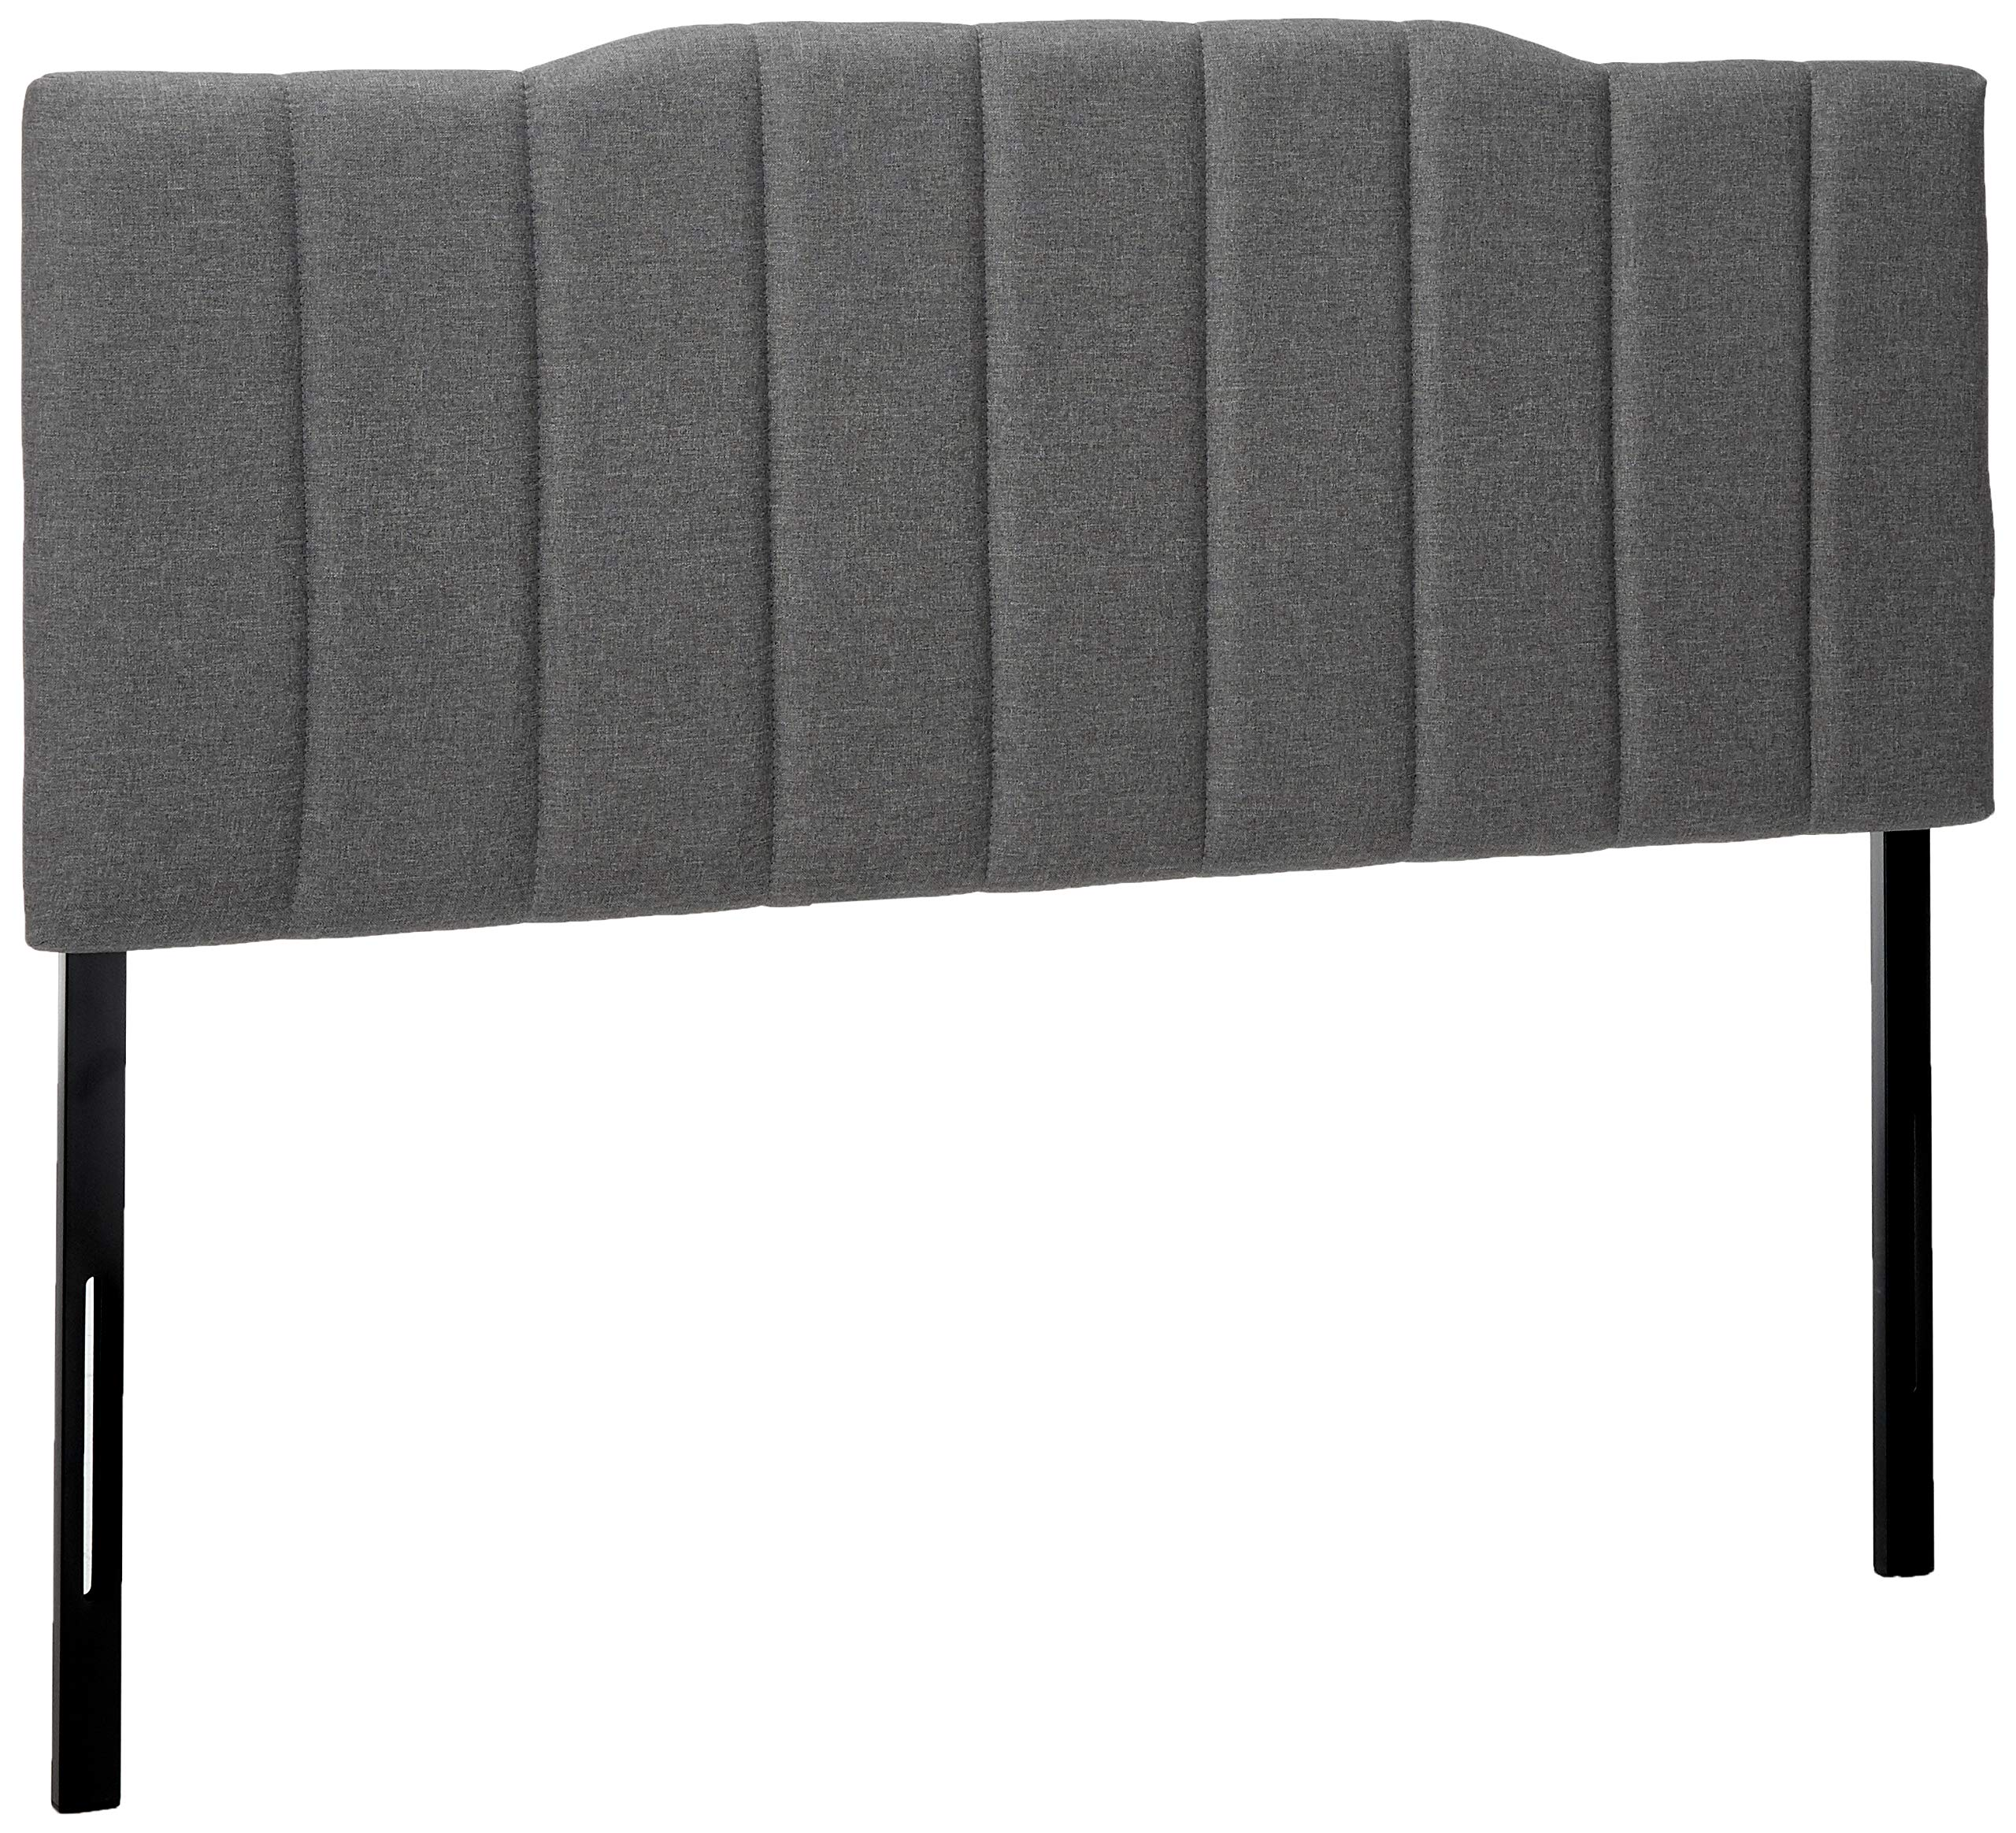 Zinus Satish Upholstered Channel Stitched Headboard in Grey, Full